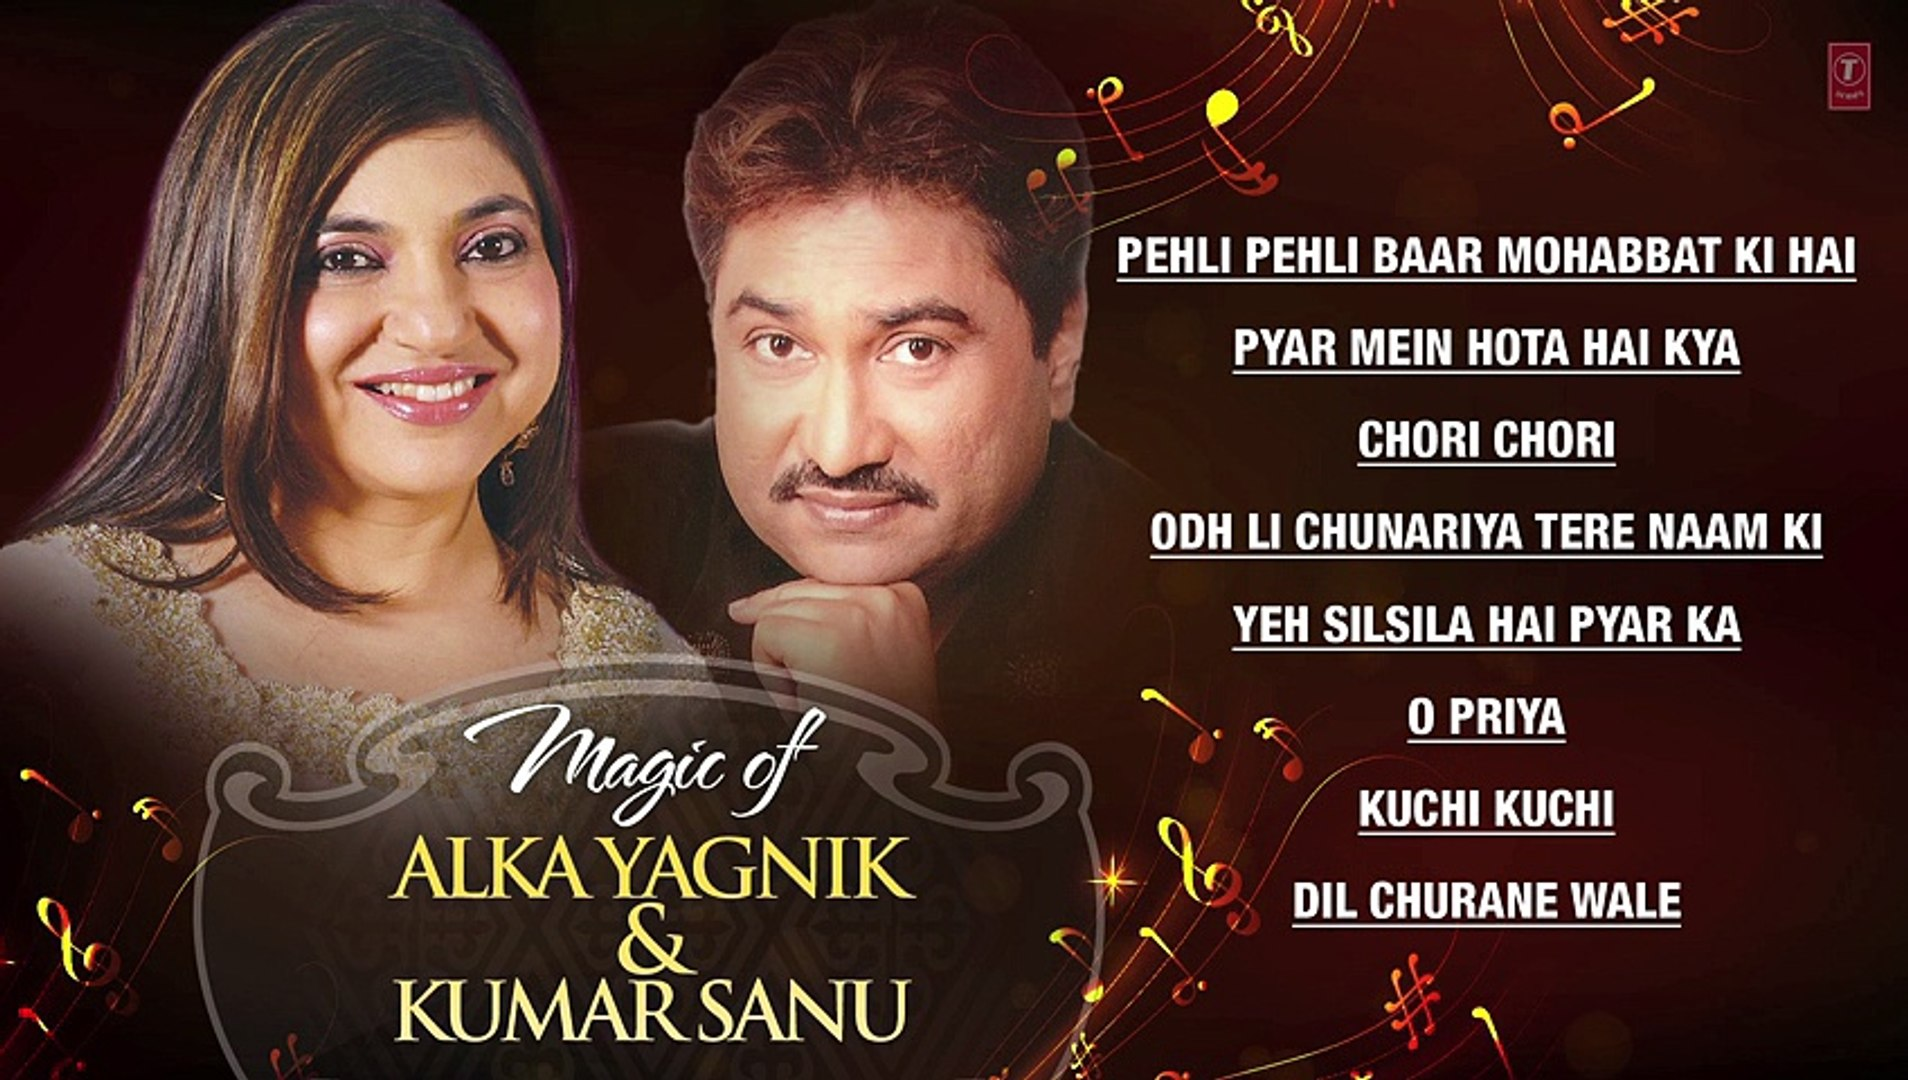 ALKA YAGNIK AND KUMAR SANU SONGS - Superhit Bollywood Songs - Non-Stop Hits  - Jukebox